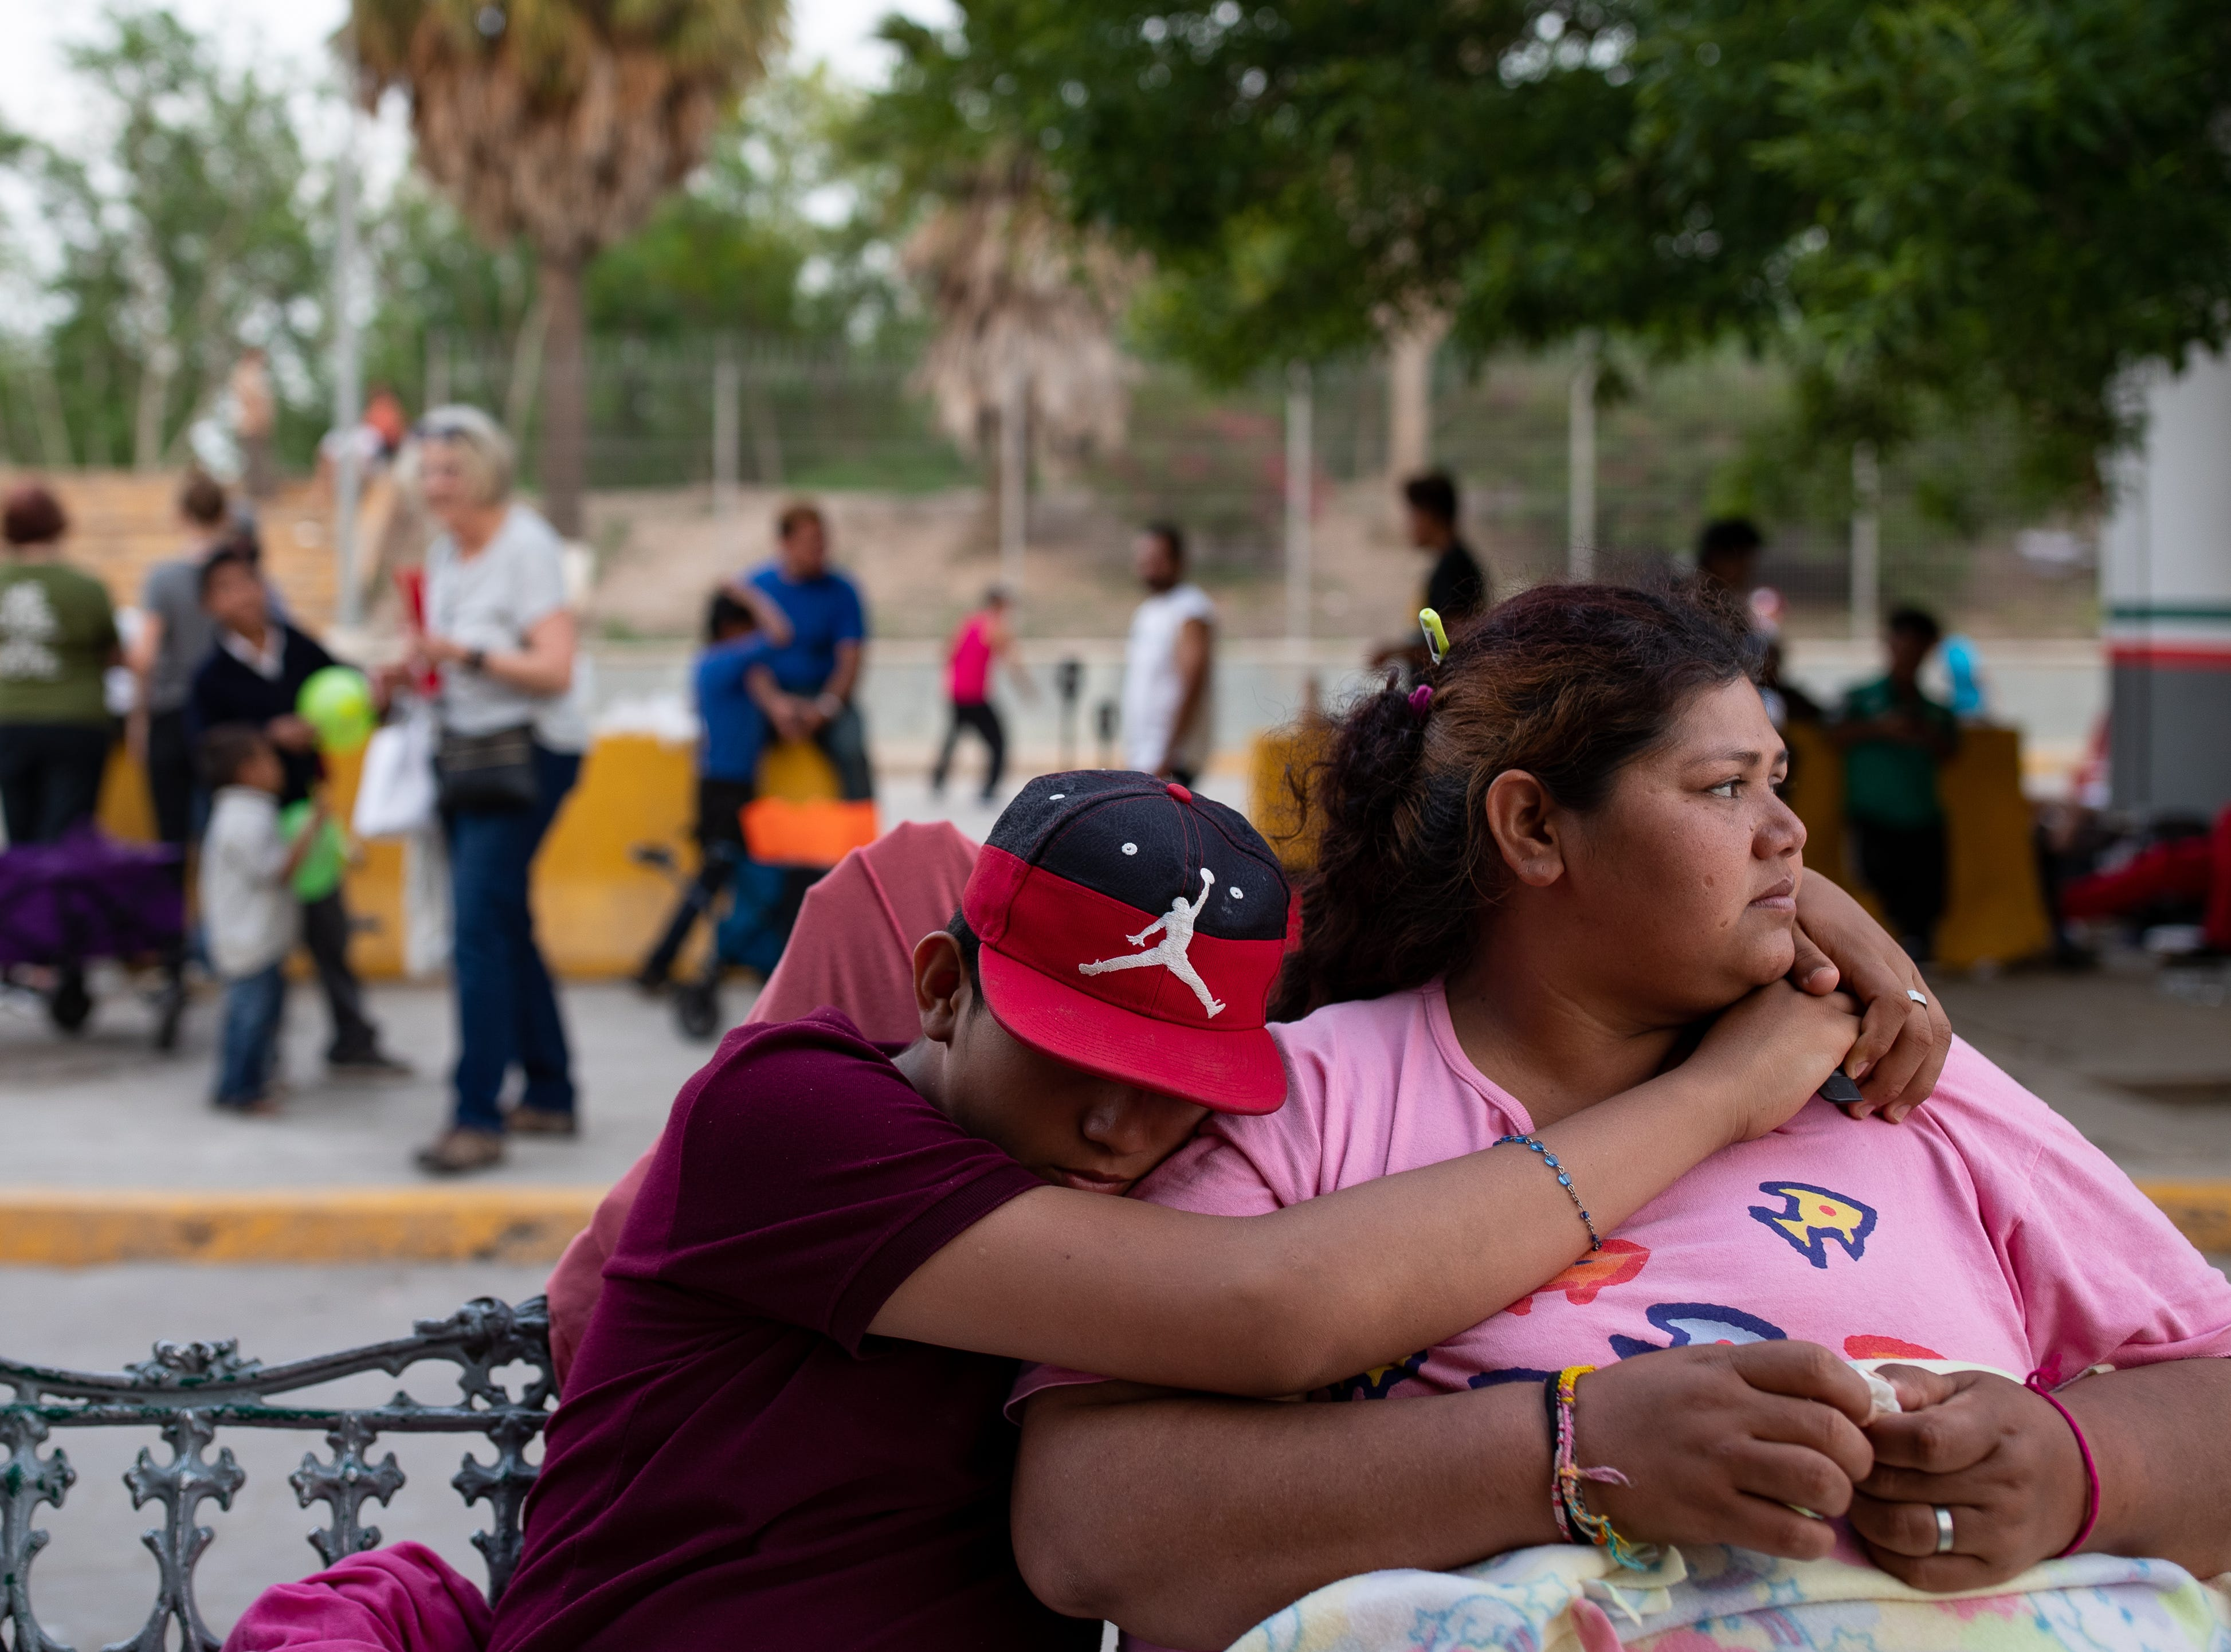 Jeffrey Sierra holds on to his mom Laura Soto on Thursday, April 4, 2019 as they sit in a makeshift camp next to the international bridge in Matamoros, Mexico where migrants wait for weeks to seek asylum in the U.S. The pair came from Honduras.